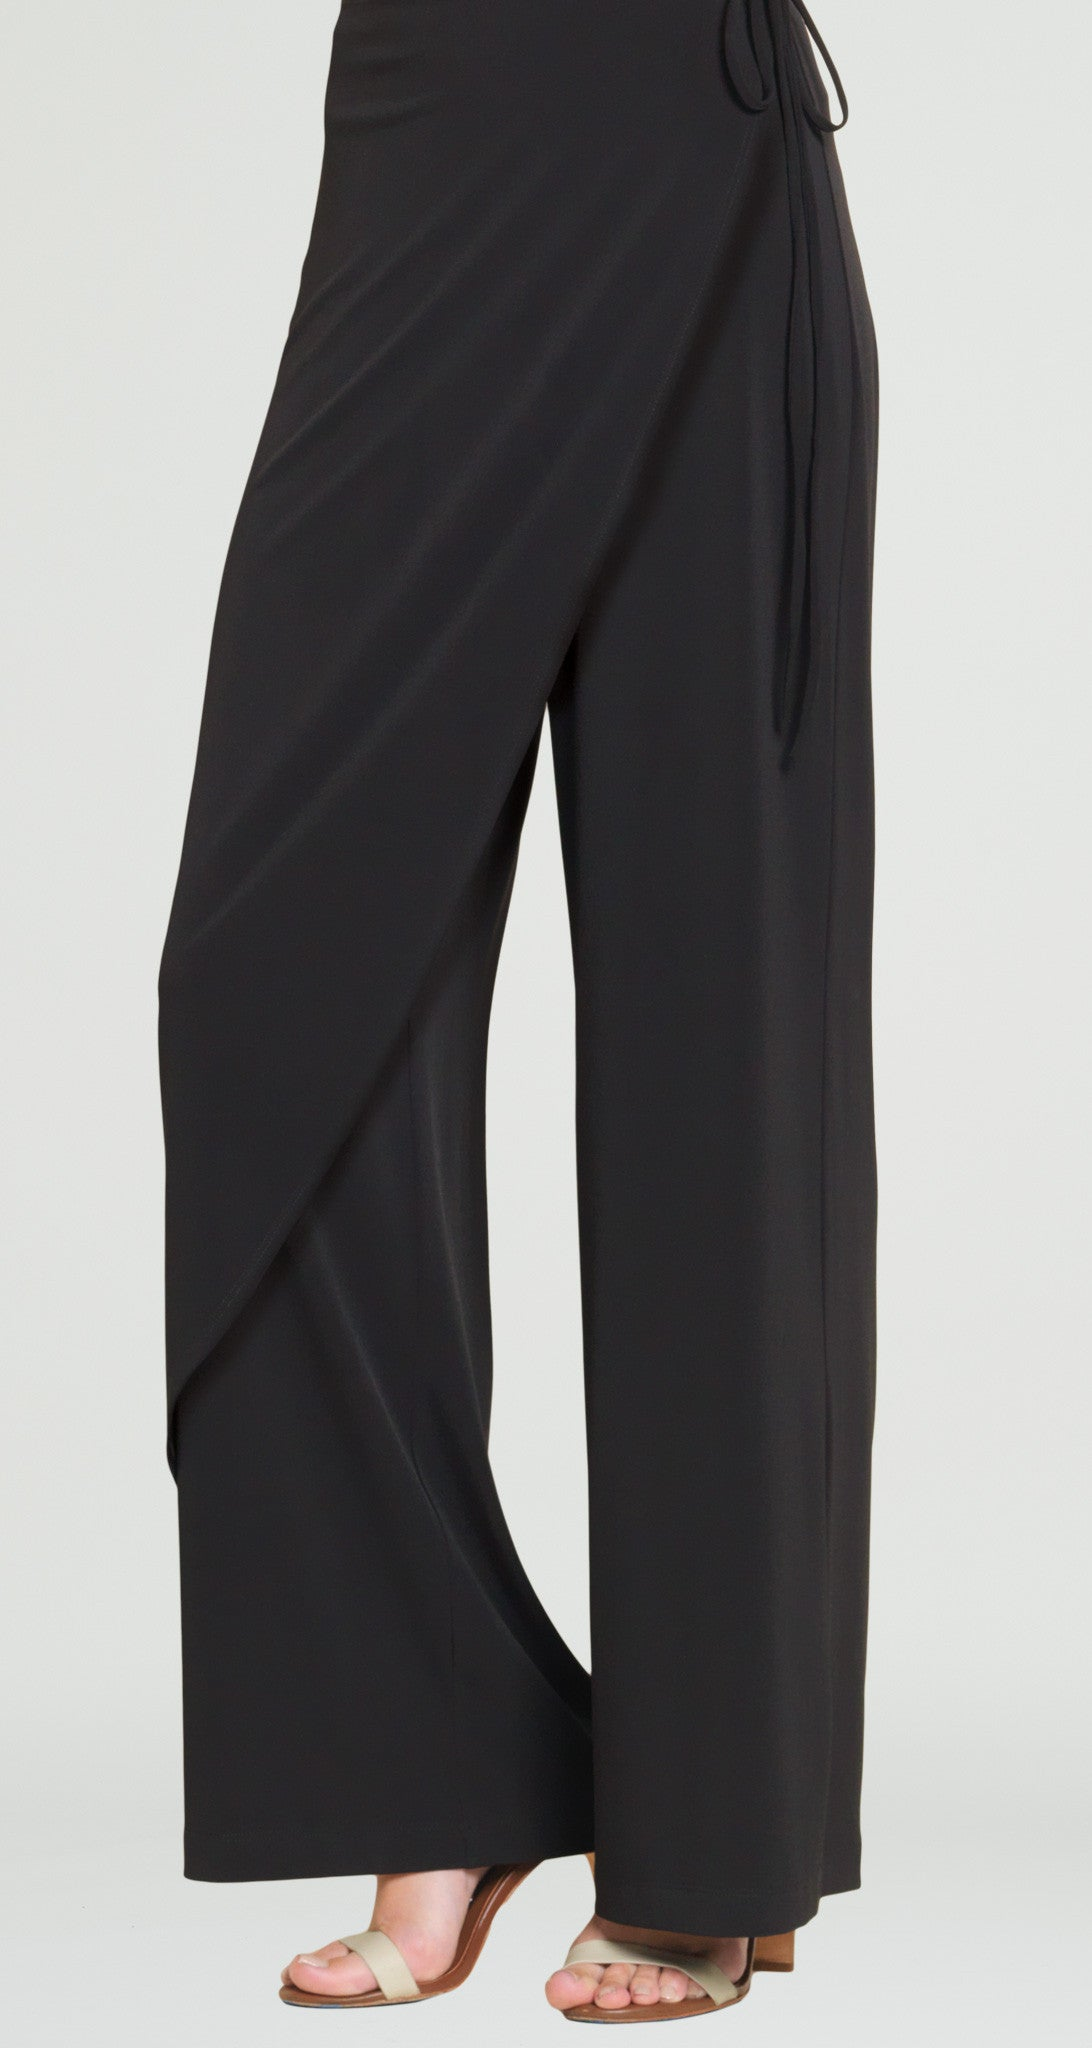 Modern Wrap Pant - Final Sale! Size XL